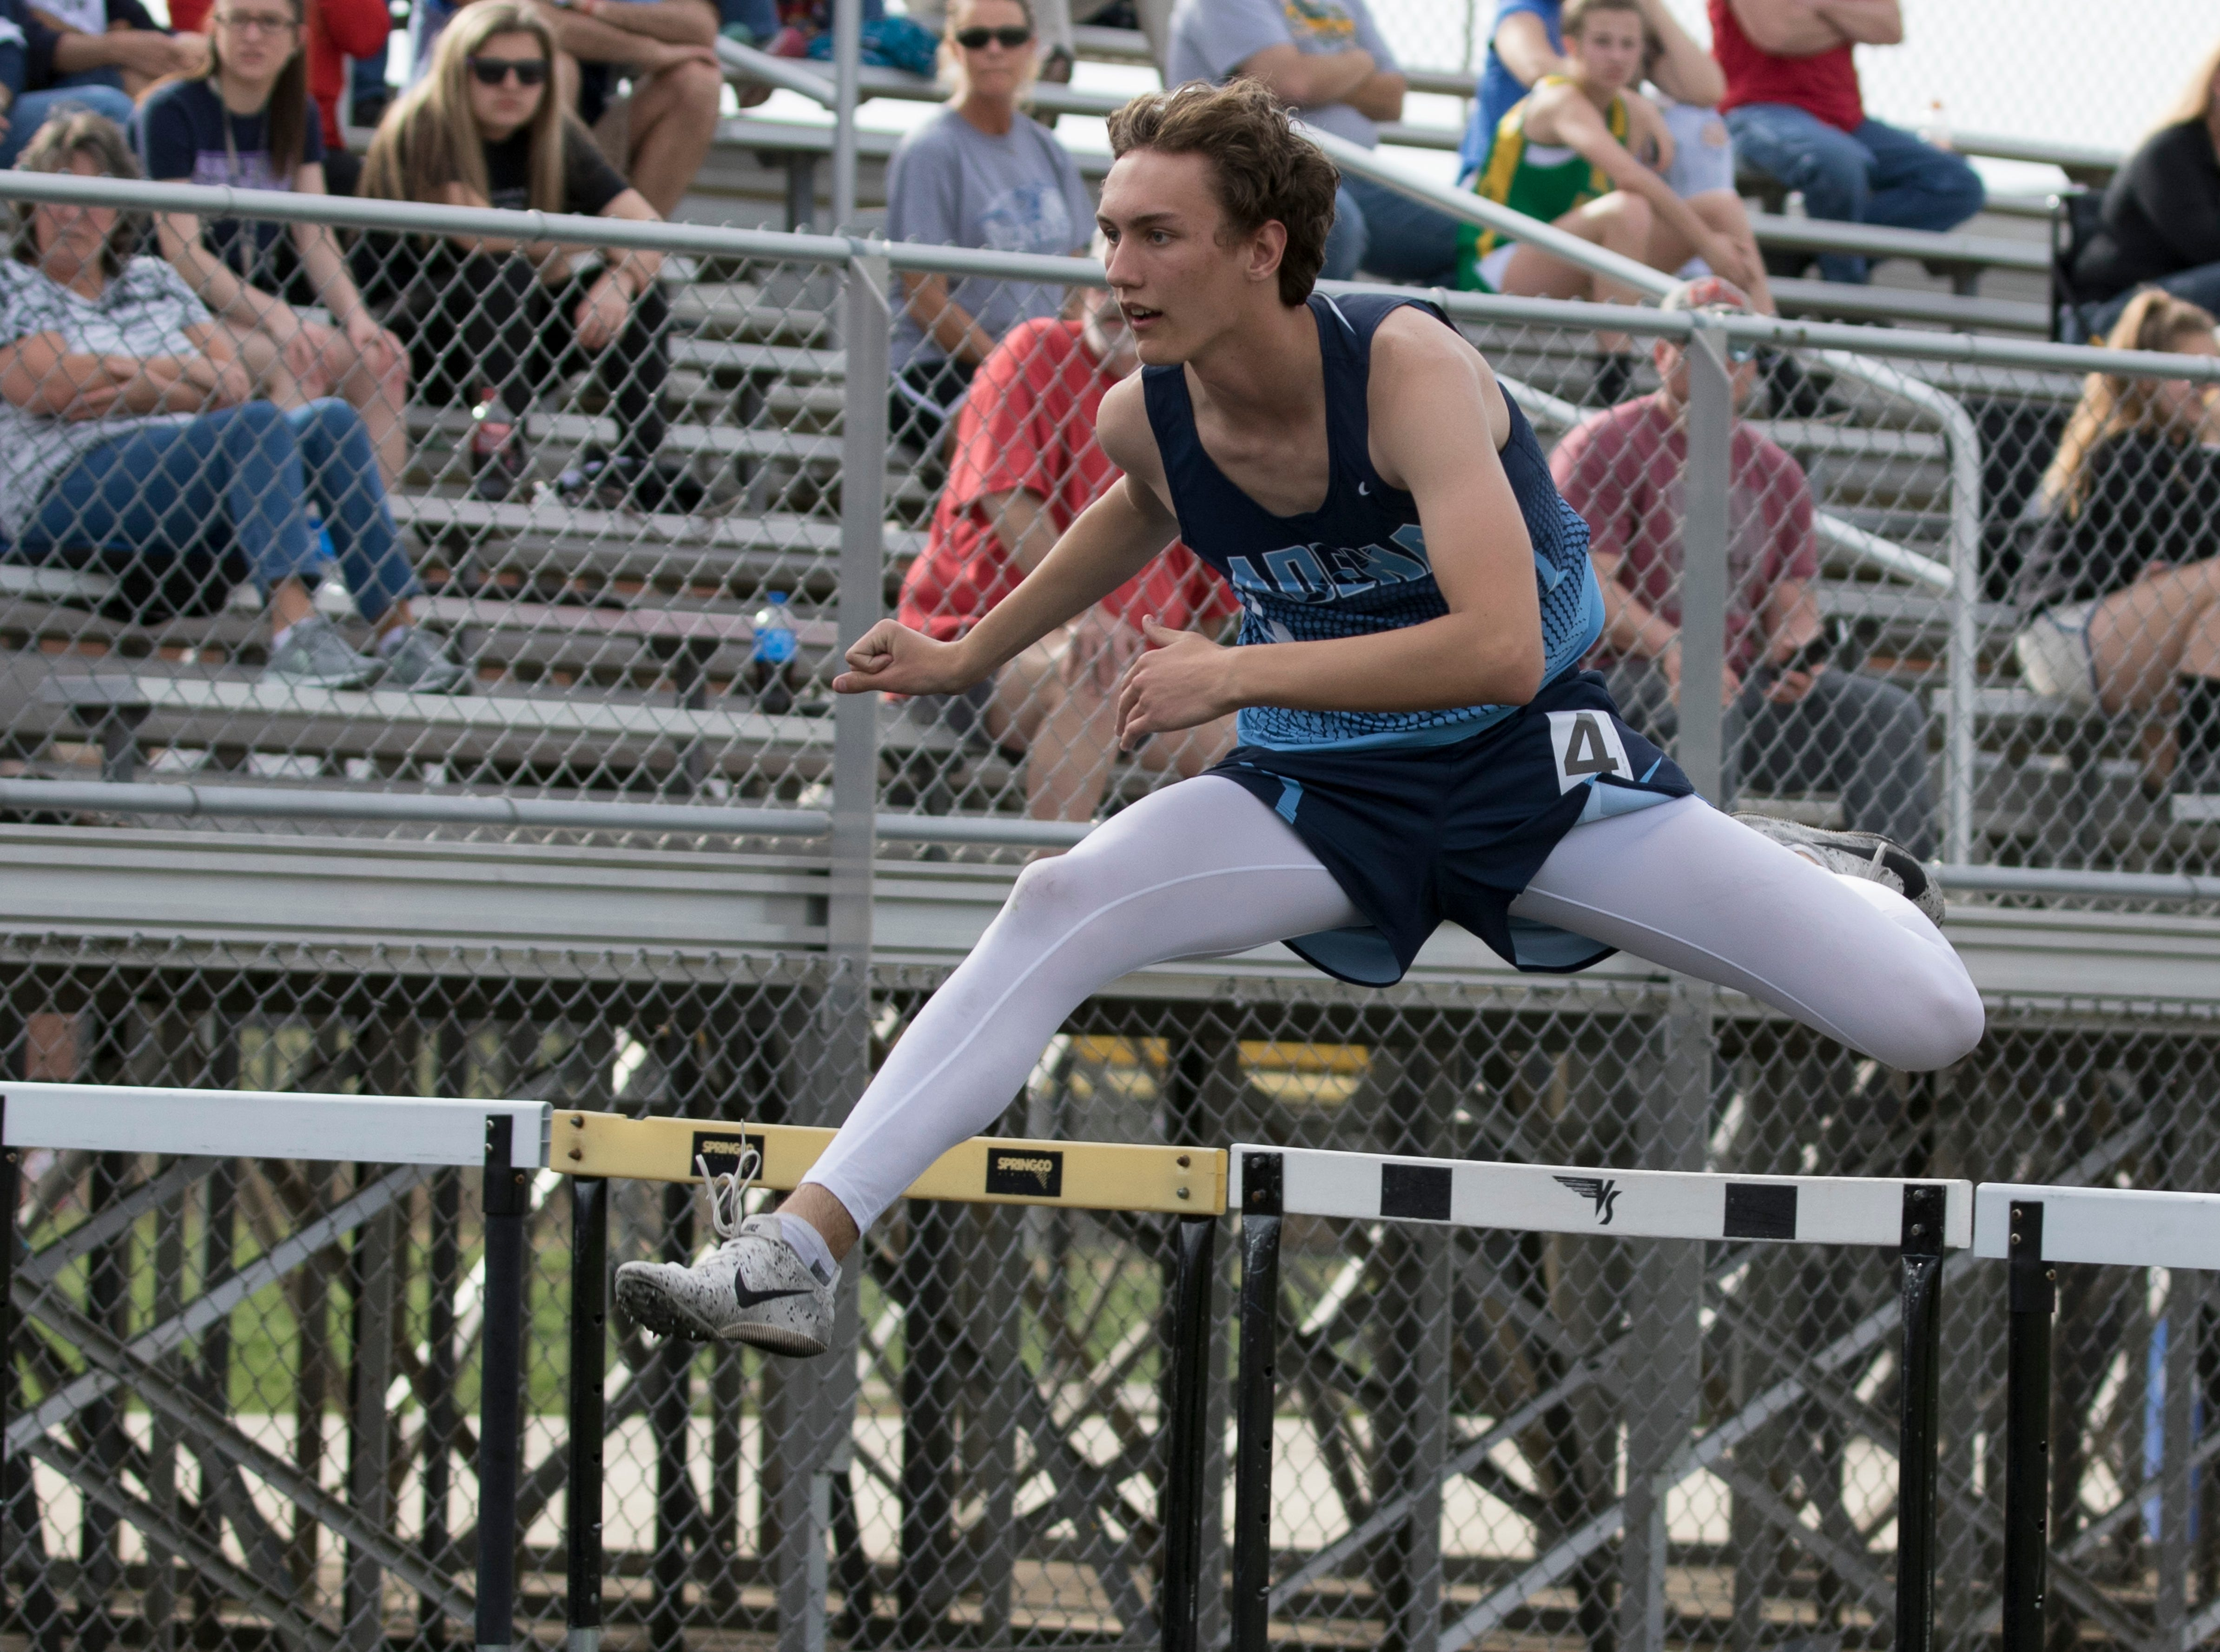 The Andy Haines Invitational was held on Thursday, April 11, 2019, at Paint Valley High School with the Waverly men's team taking first and the Westfall girls' team placing second overall.